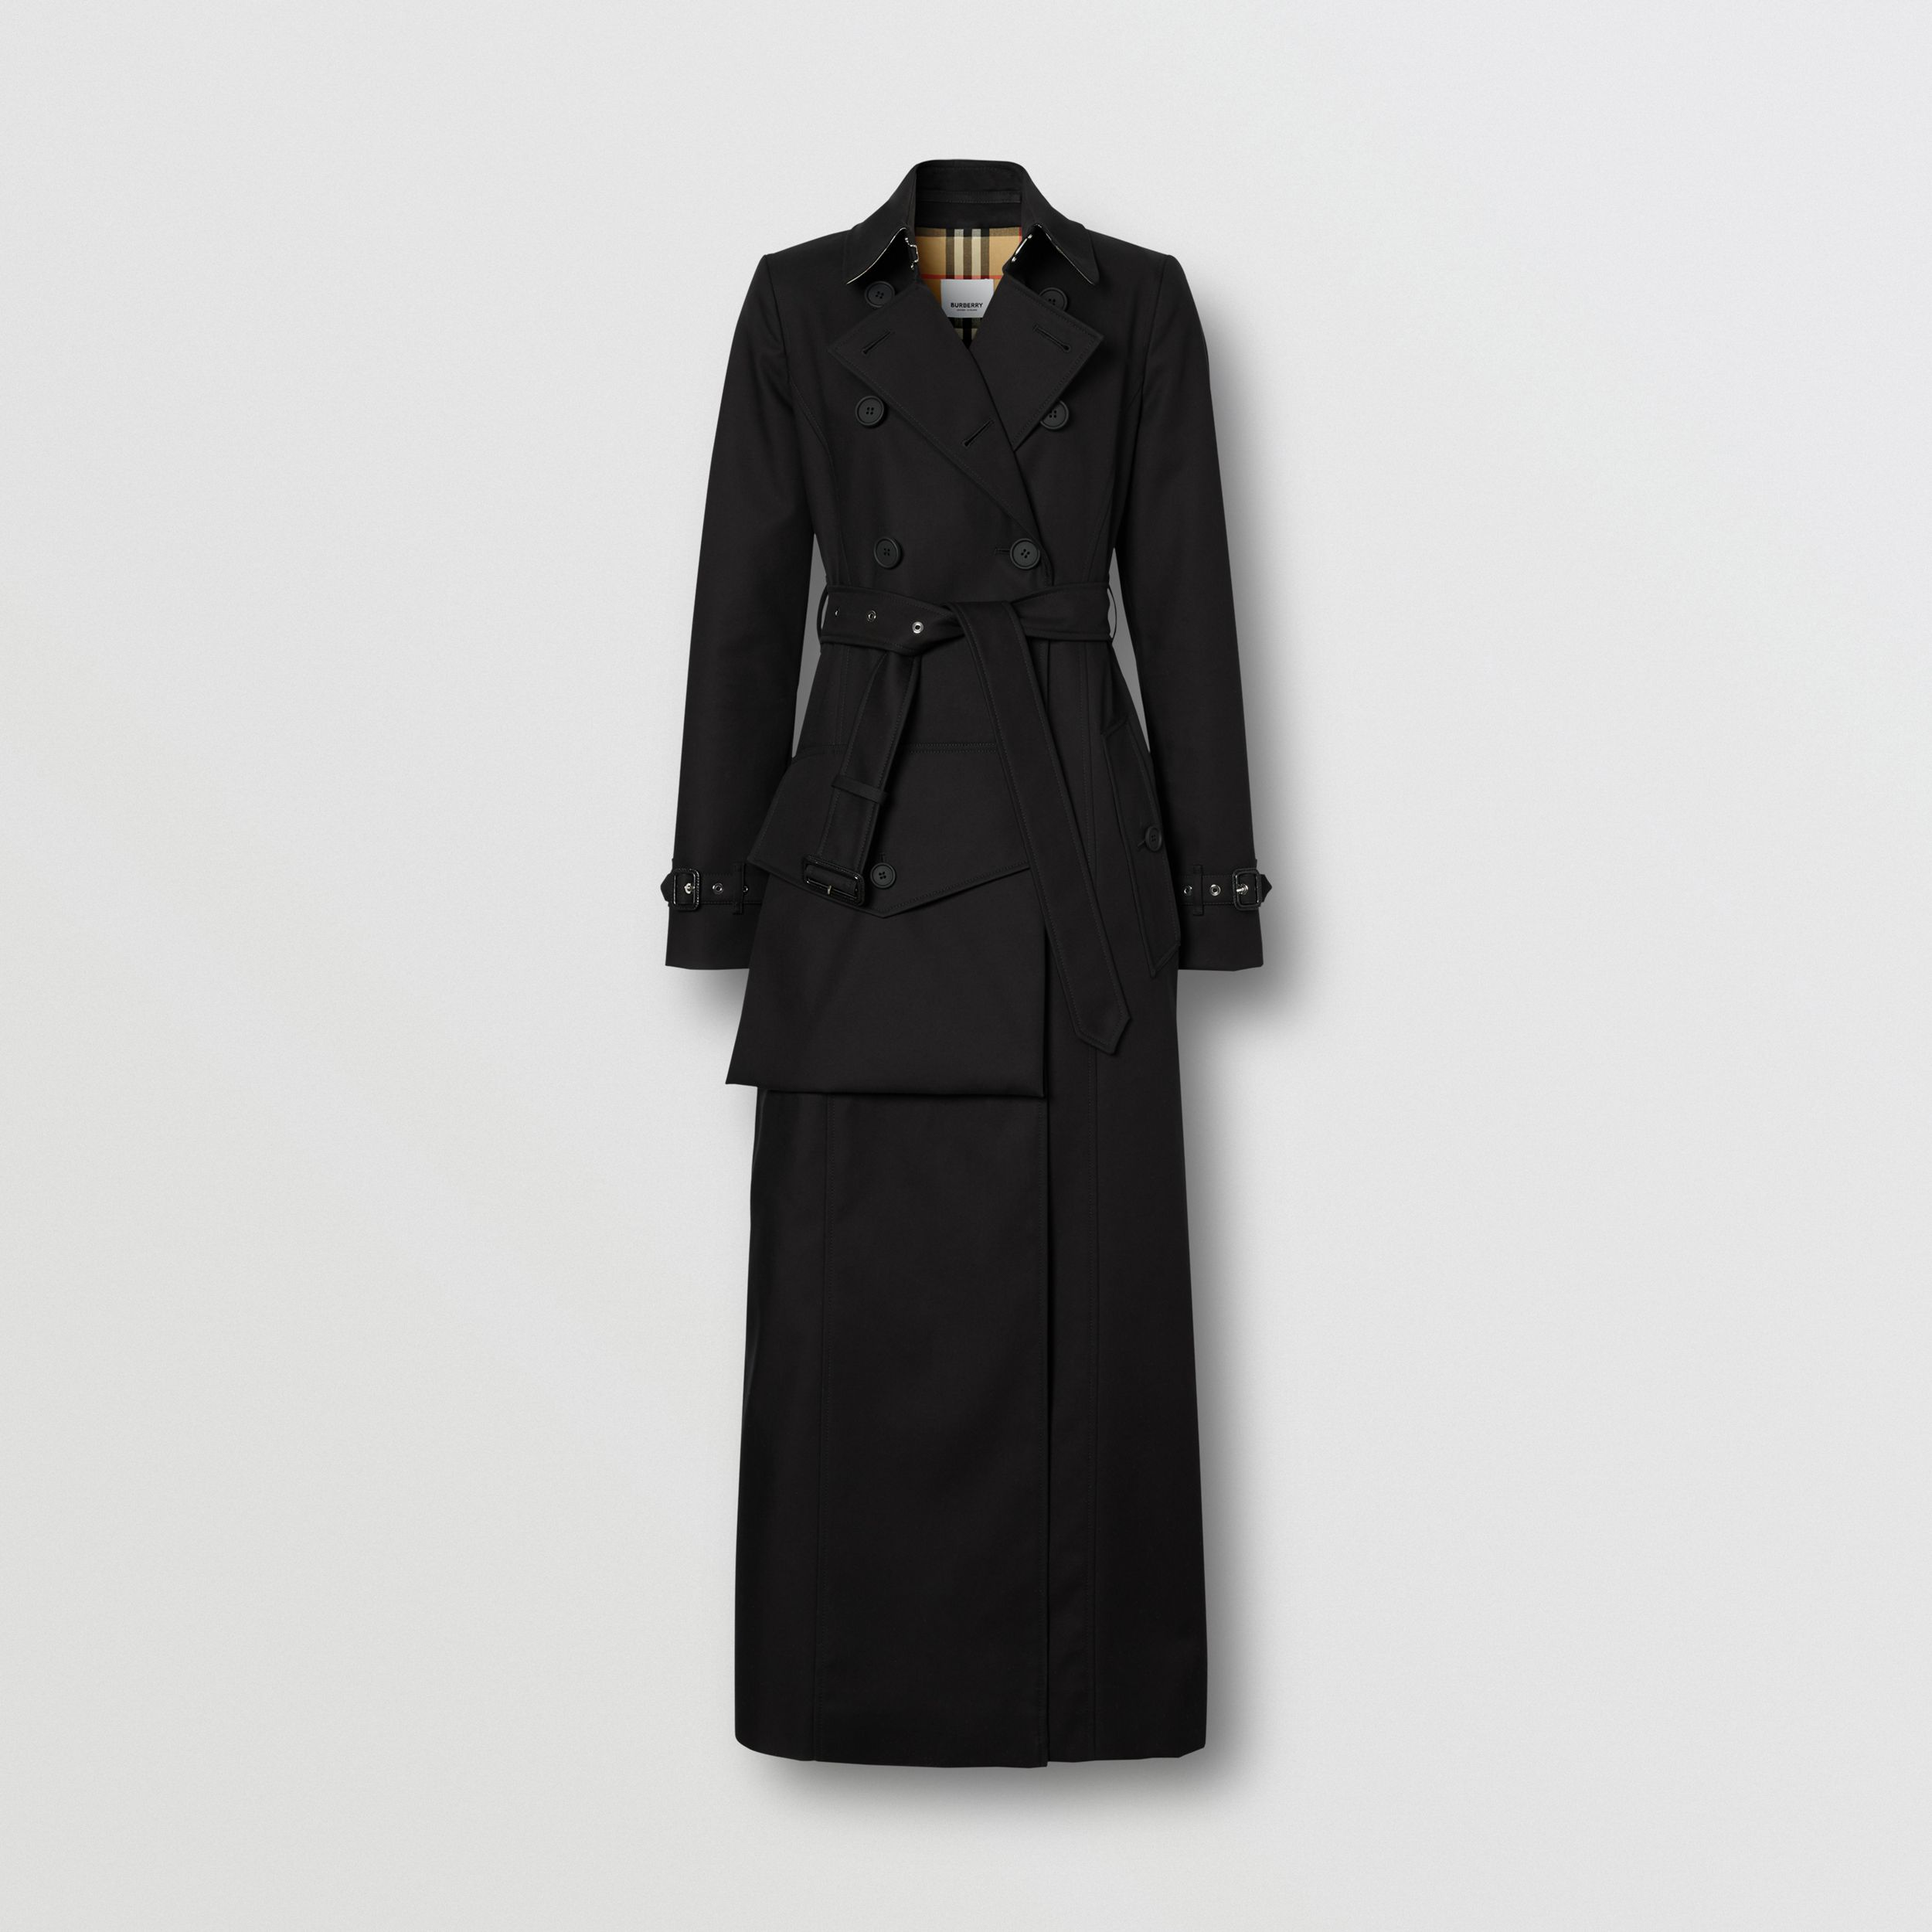 Pocket Detail Cotton Gabardine Trench Coat in Black - Women | Burberry United Kingdom - 4